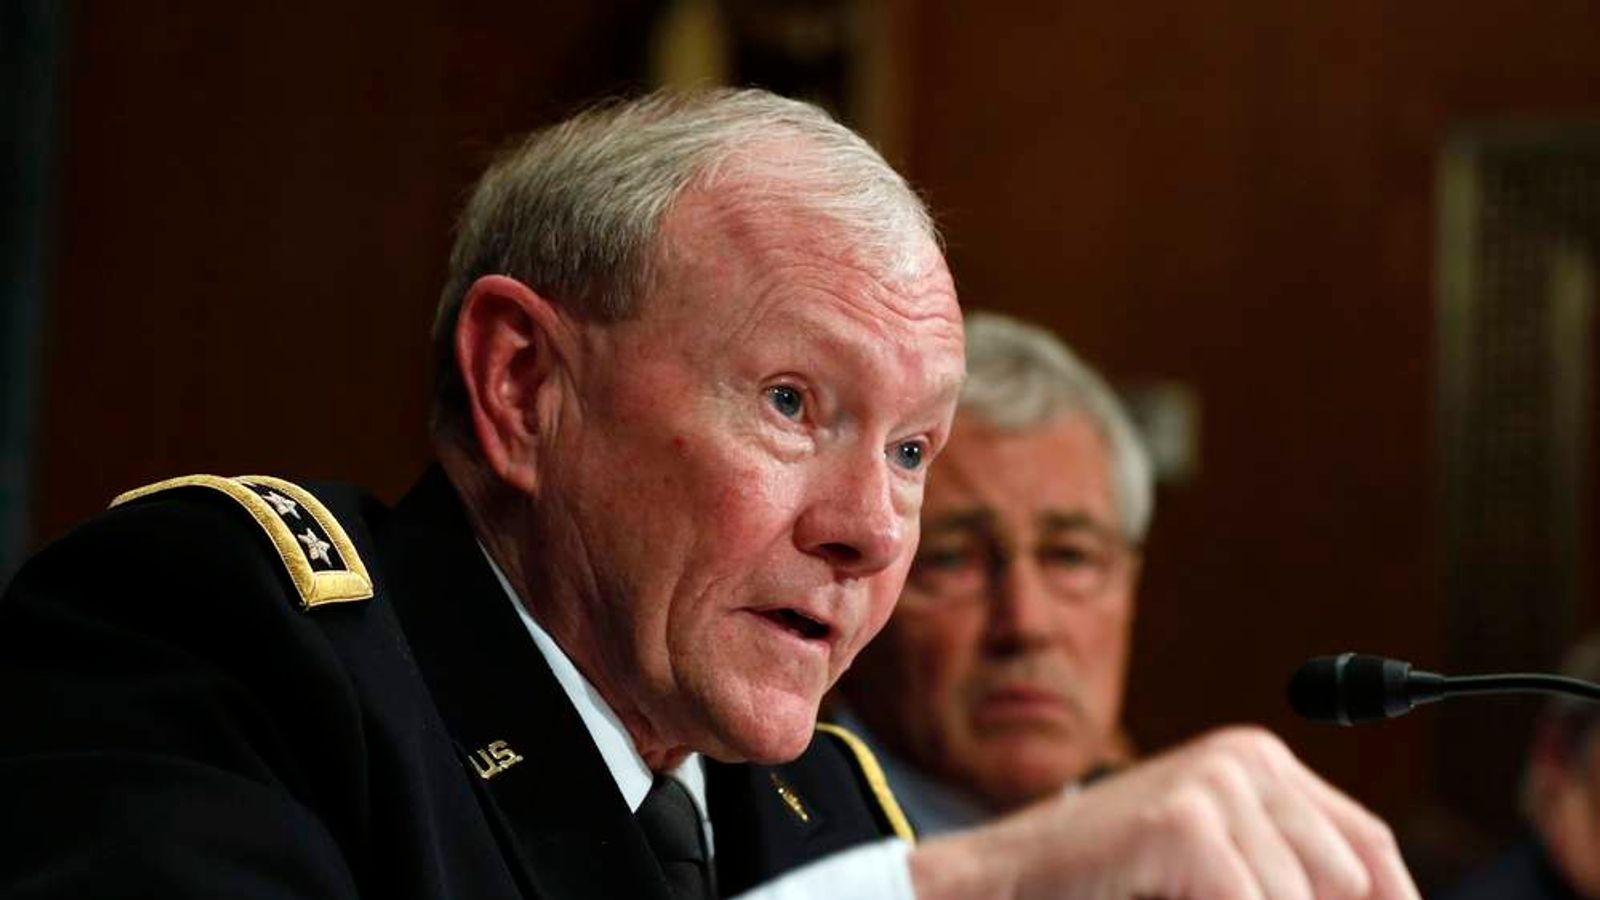 Chairman of the Joint Chiefs Gen. Dempsey speaks next to U.S. Secretary of Defense Hagel during the defense subcommittee of the Senate Appropriations Committee on Capitol Hill in Washington.